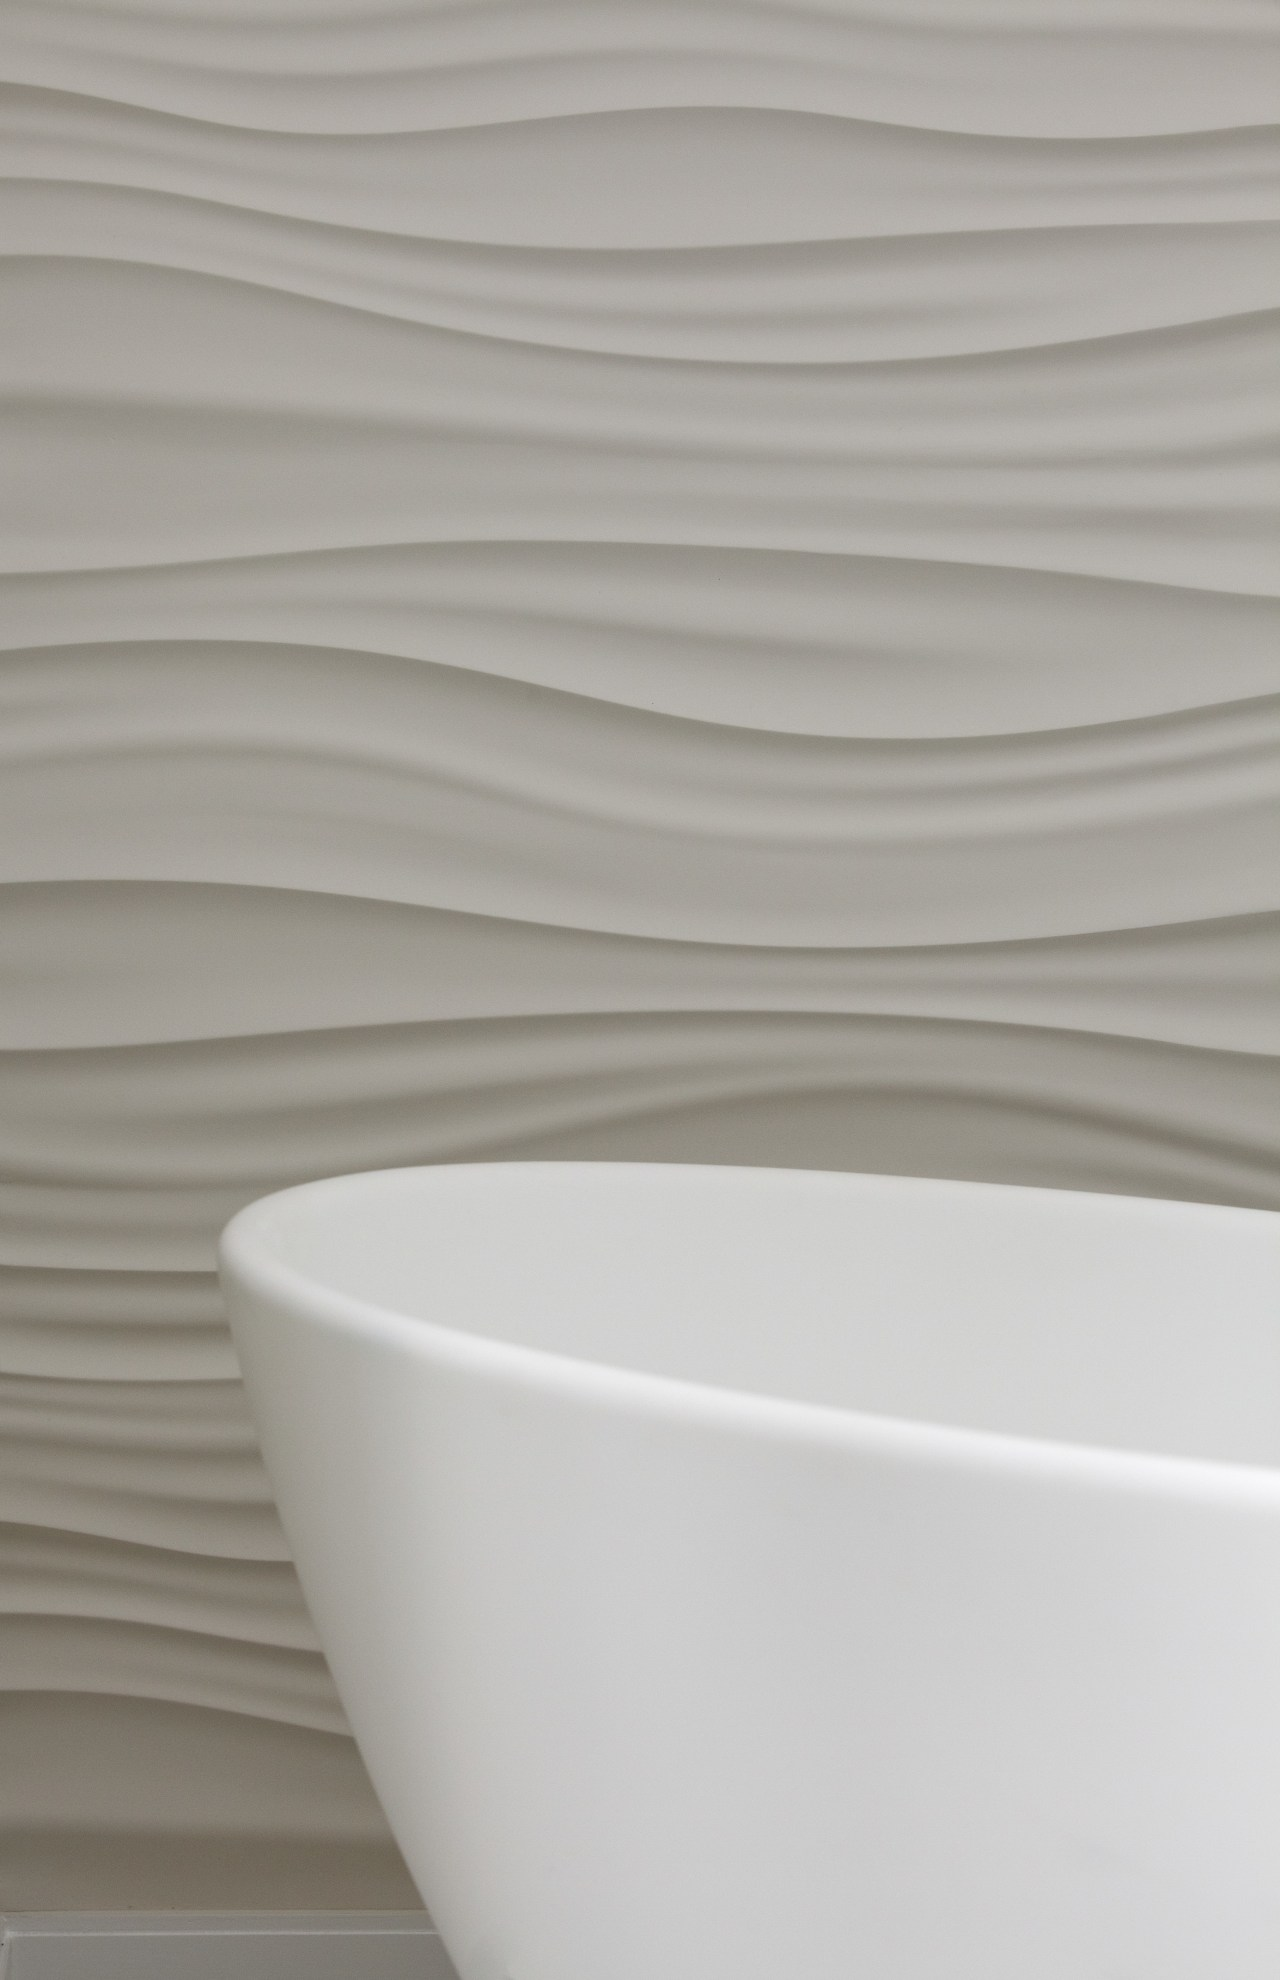 This all-white bathroom replaces a dated master bathroom ceramic, product design, tableware, tap, toilet seat, gray